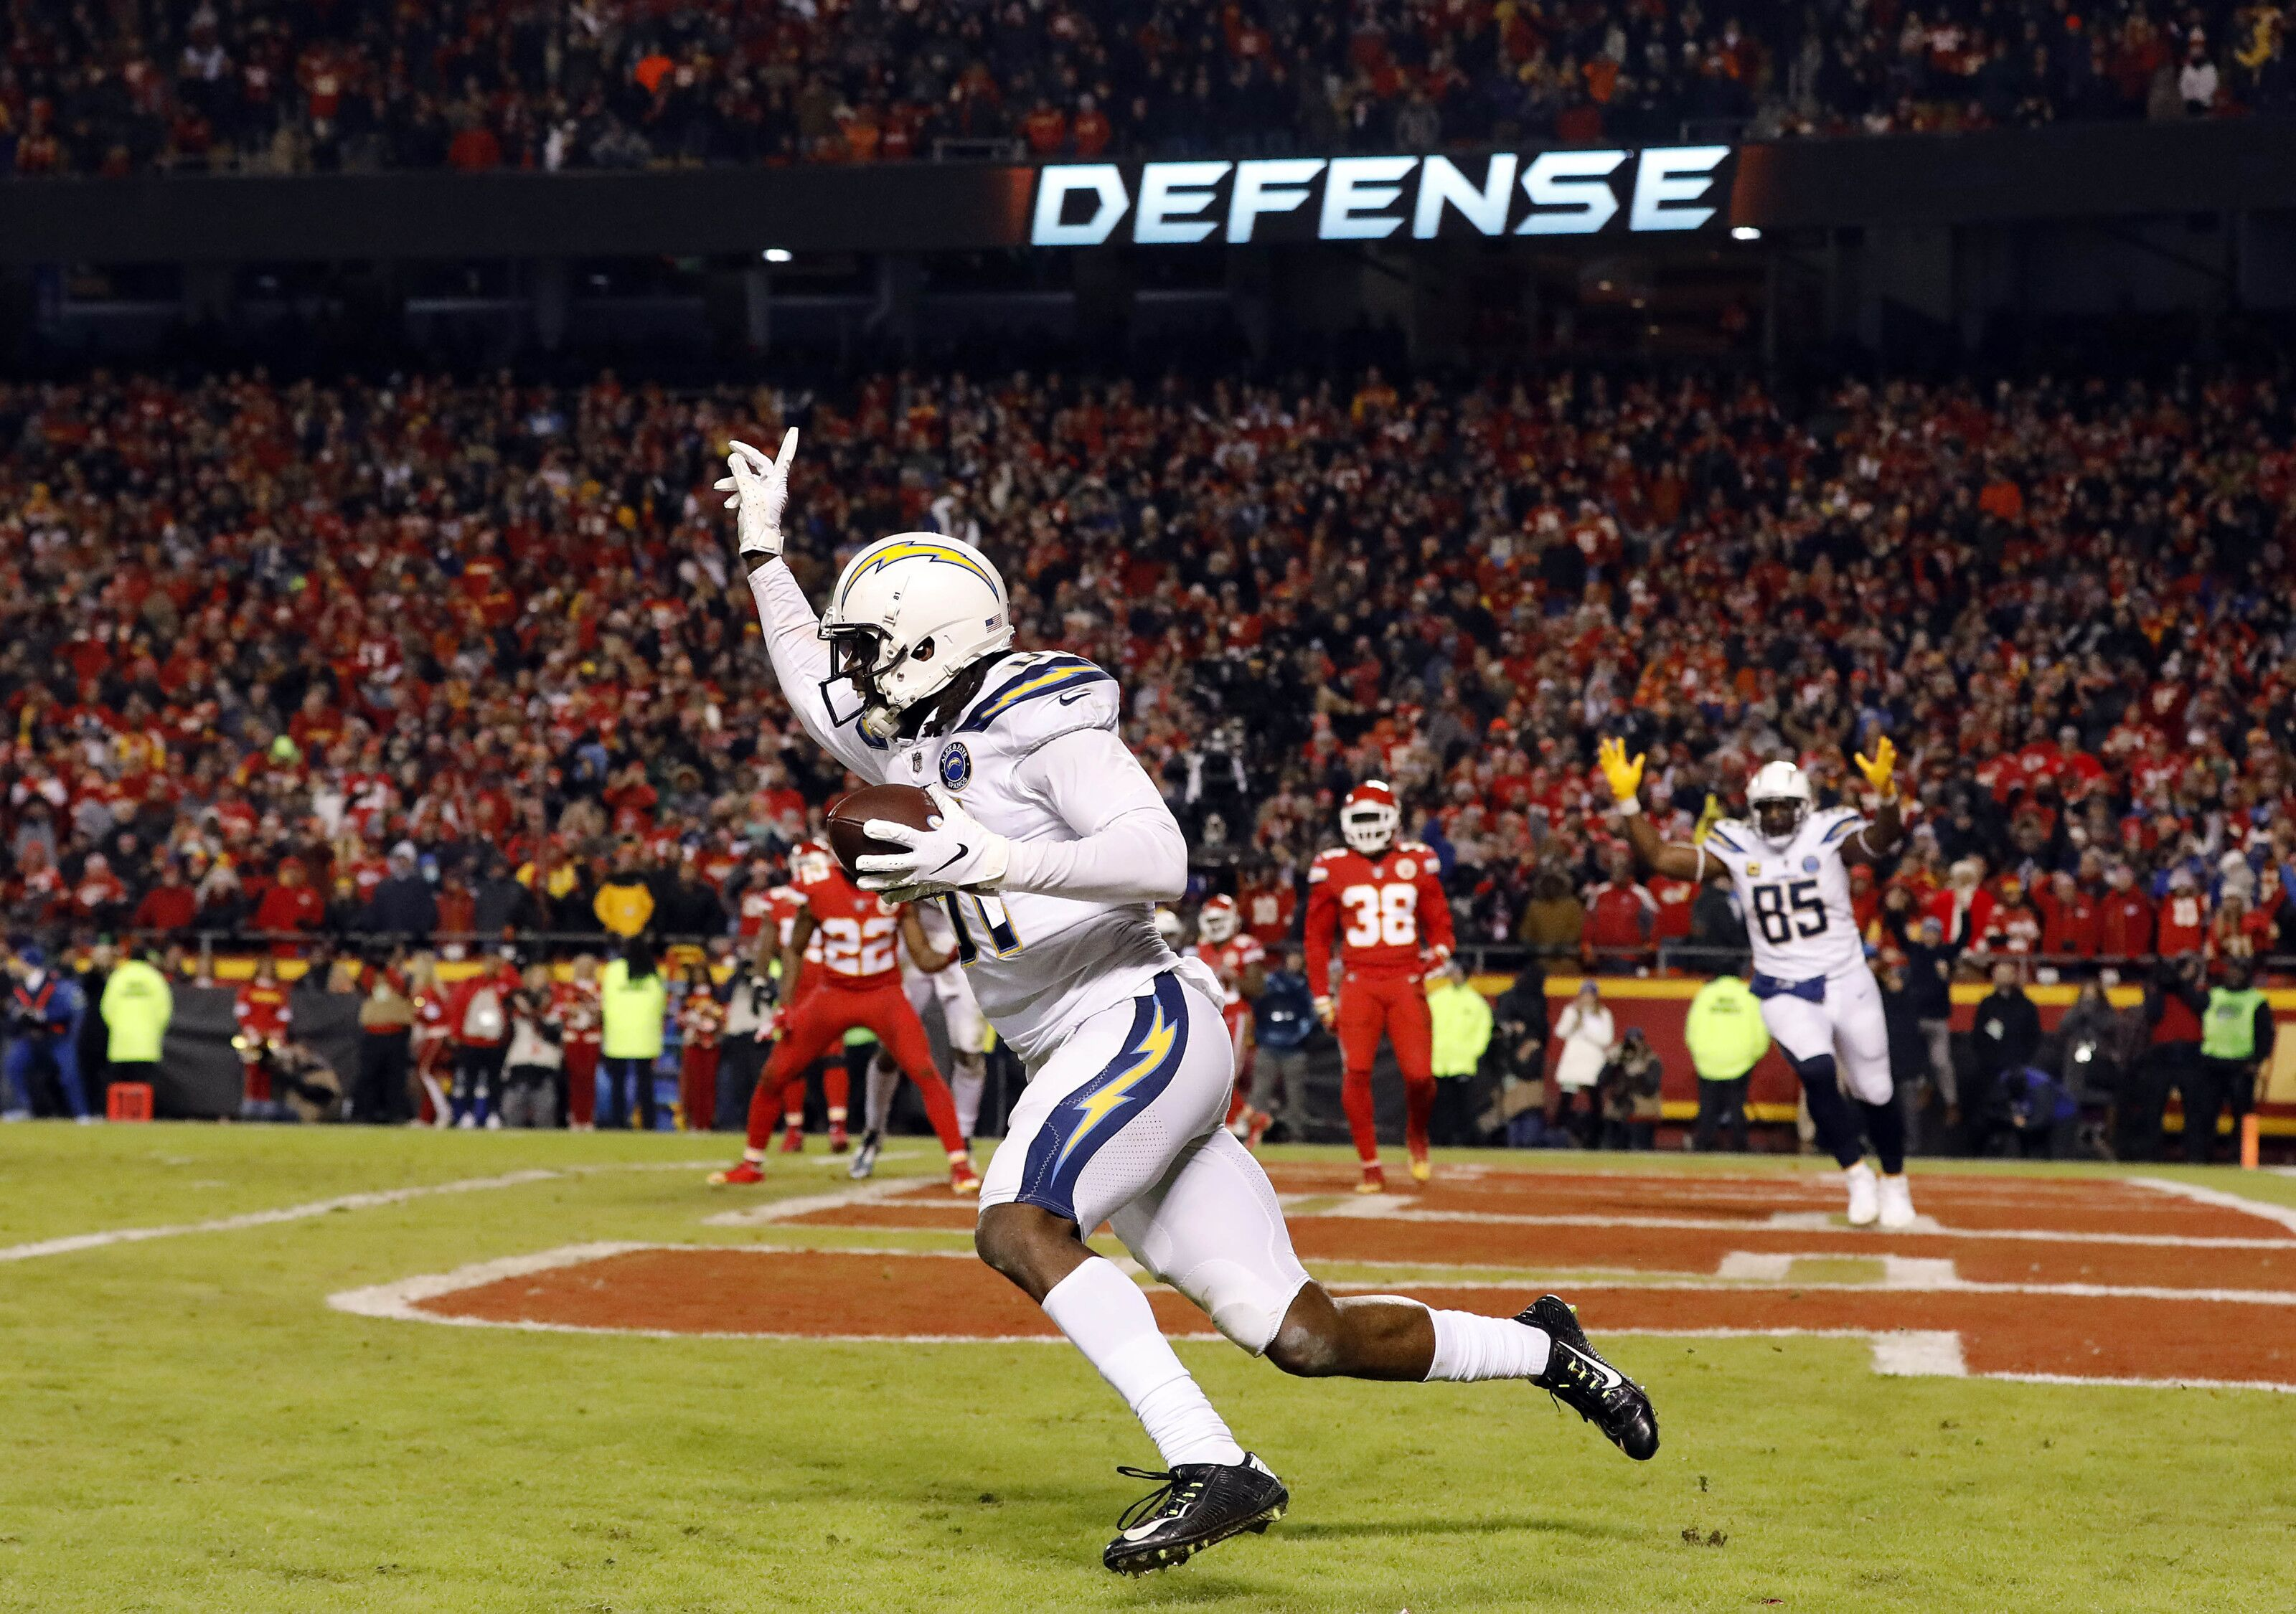 Chargers stun Chiefs with epic comeback on gutsy 2-point conversion, clinch playoff berth